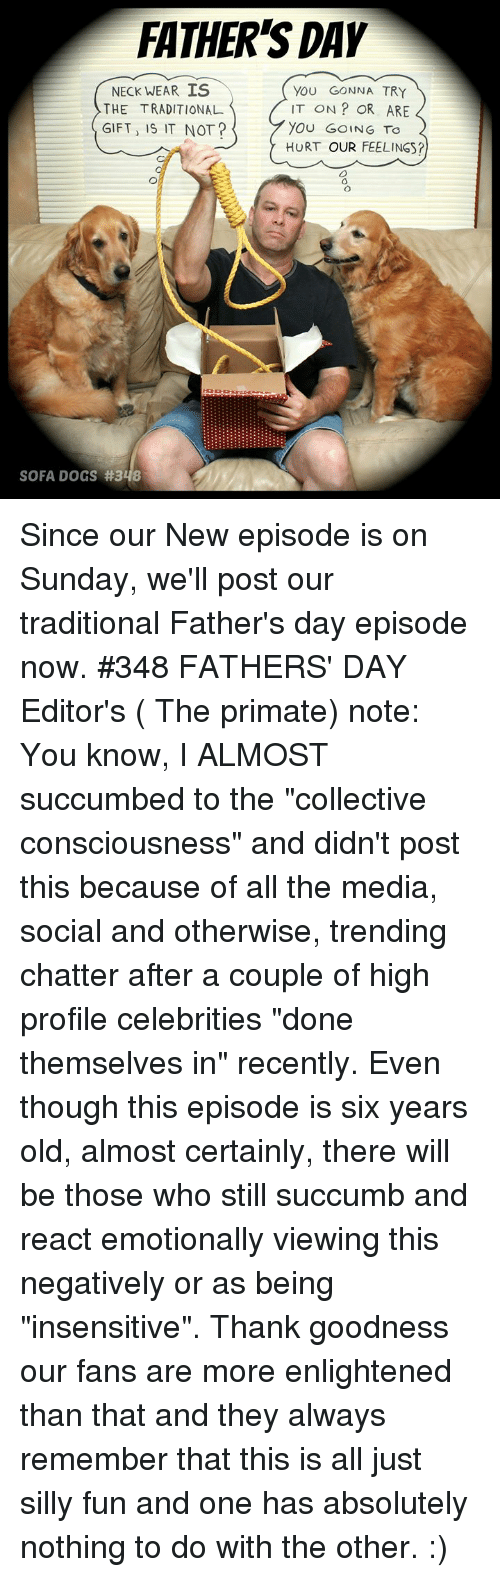 "Fathers Day, Memes, and Sunday: FATHER'S DAY  NECK WEAR IS  THE TRADITIONAL  GIFT, IS IT NOT?  YOU GONNA TRY  IT ON? OR ARE  YOU GoING TO  HURT OUR FEELINGS?  SOFA DOCS Since our New episode is on Sunday, we'll post our traditional Father's day episode now. #348 FATHERS' DAY Editor's ( The primate) note: You know, I ALMOST succumbed to the ""collective consciousness"" and didn't post this because of all the media, social and otherwise, trending chatter after a couple of high profile celebrities ""done themselves in"" recently. Even though this episode is six years old, almost certainly, there will be those who still succumb and react emotionally viewing this negatively or as being ""insensitive"".  Thank goodness our fans are more enlightened than that and they always remember that this is all just silly fun and one has absolutely nothing to do with the other. :)"